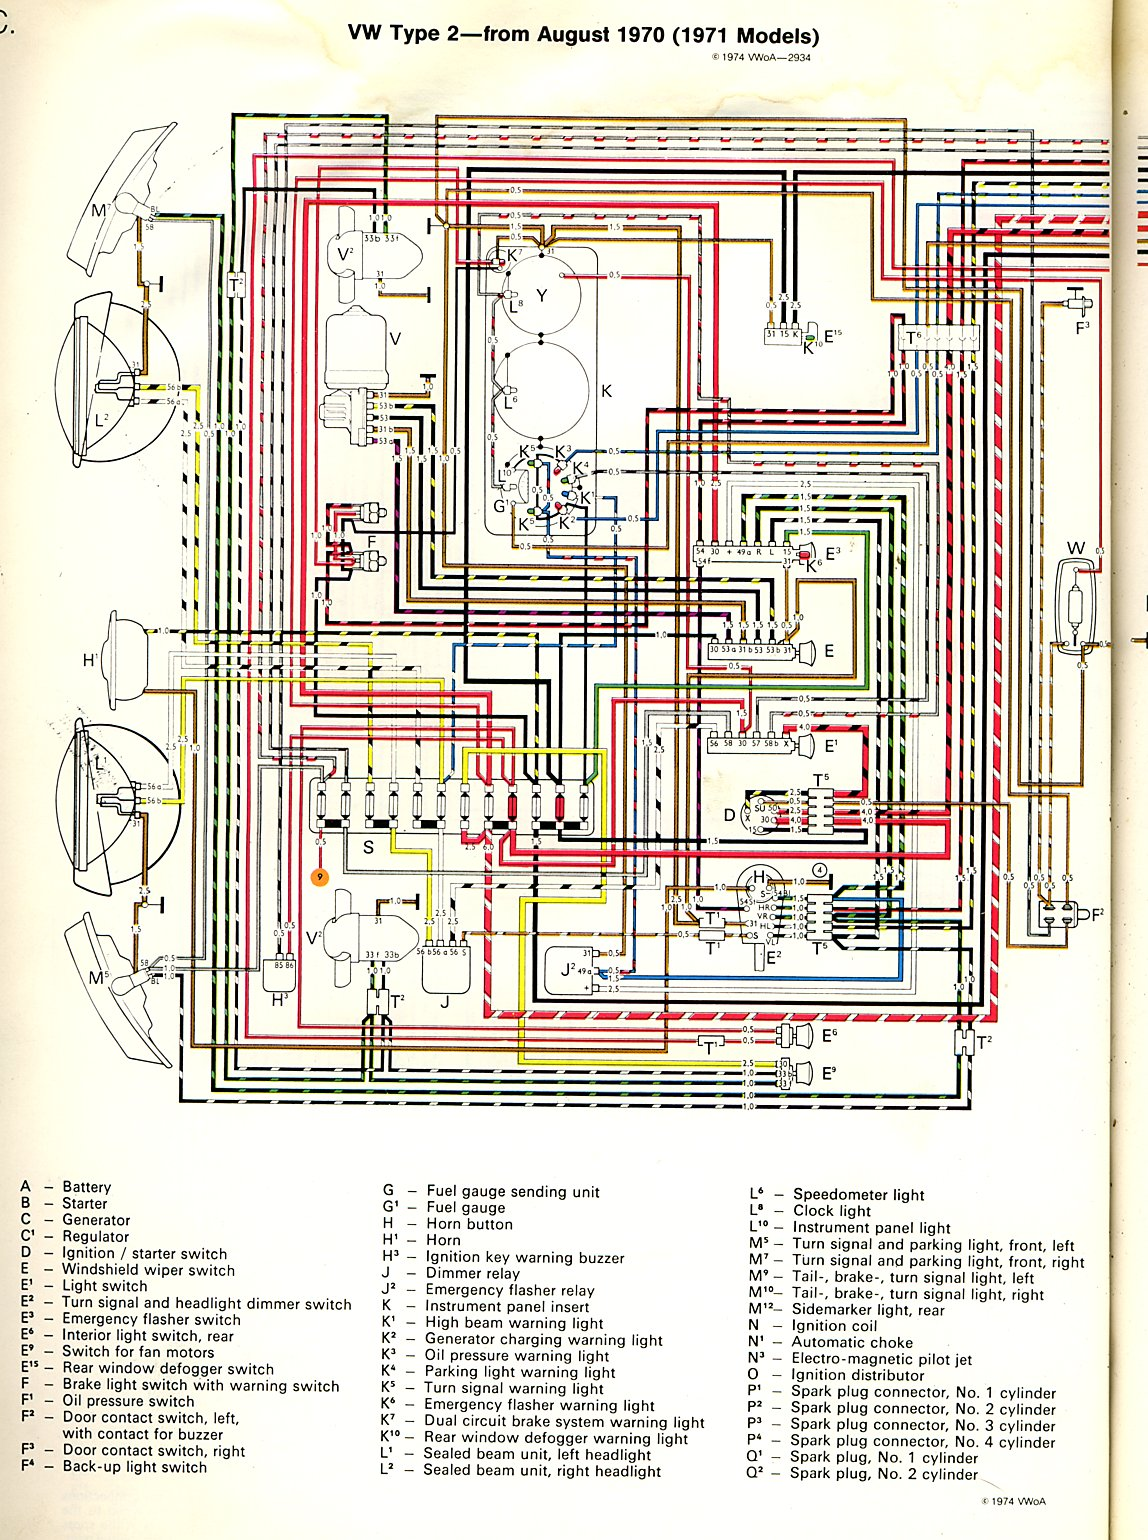 vw t2 wiring diagram vw image wiring diagram thesamba com type 2 wiring diagrams